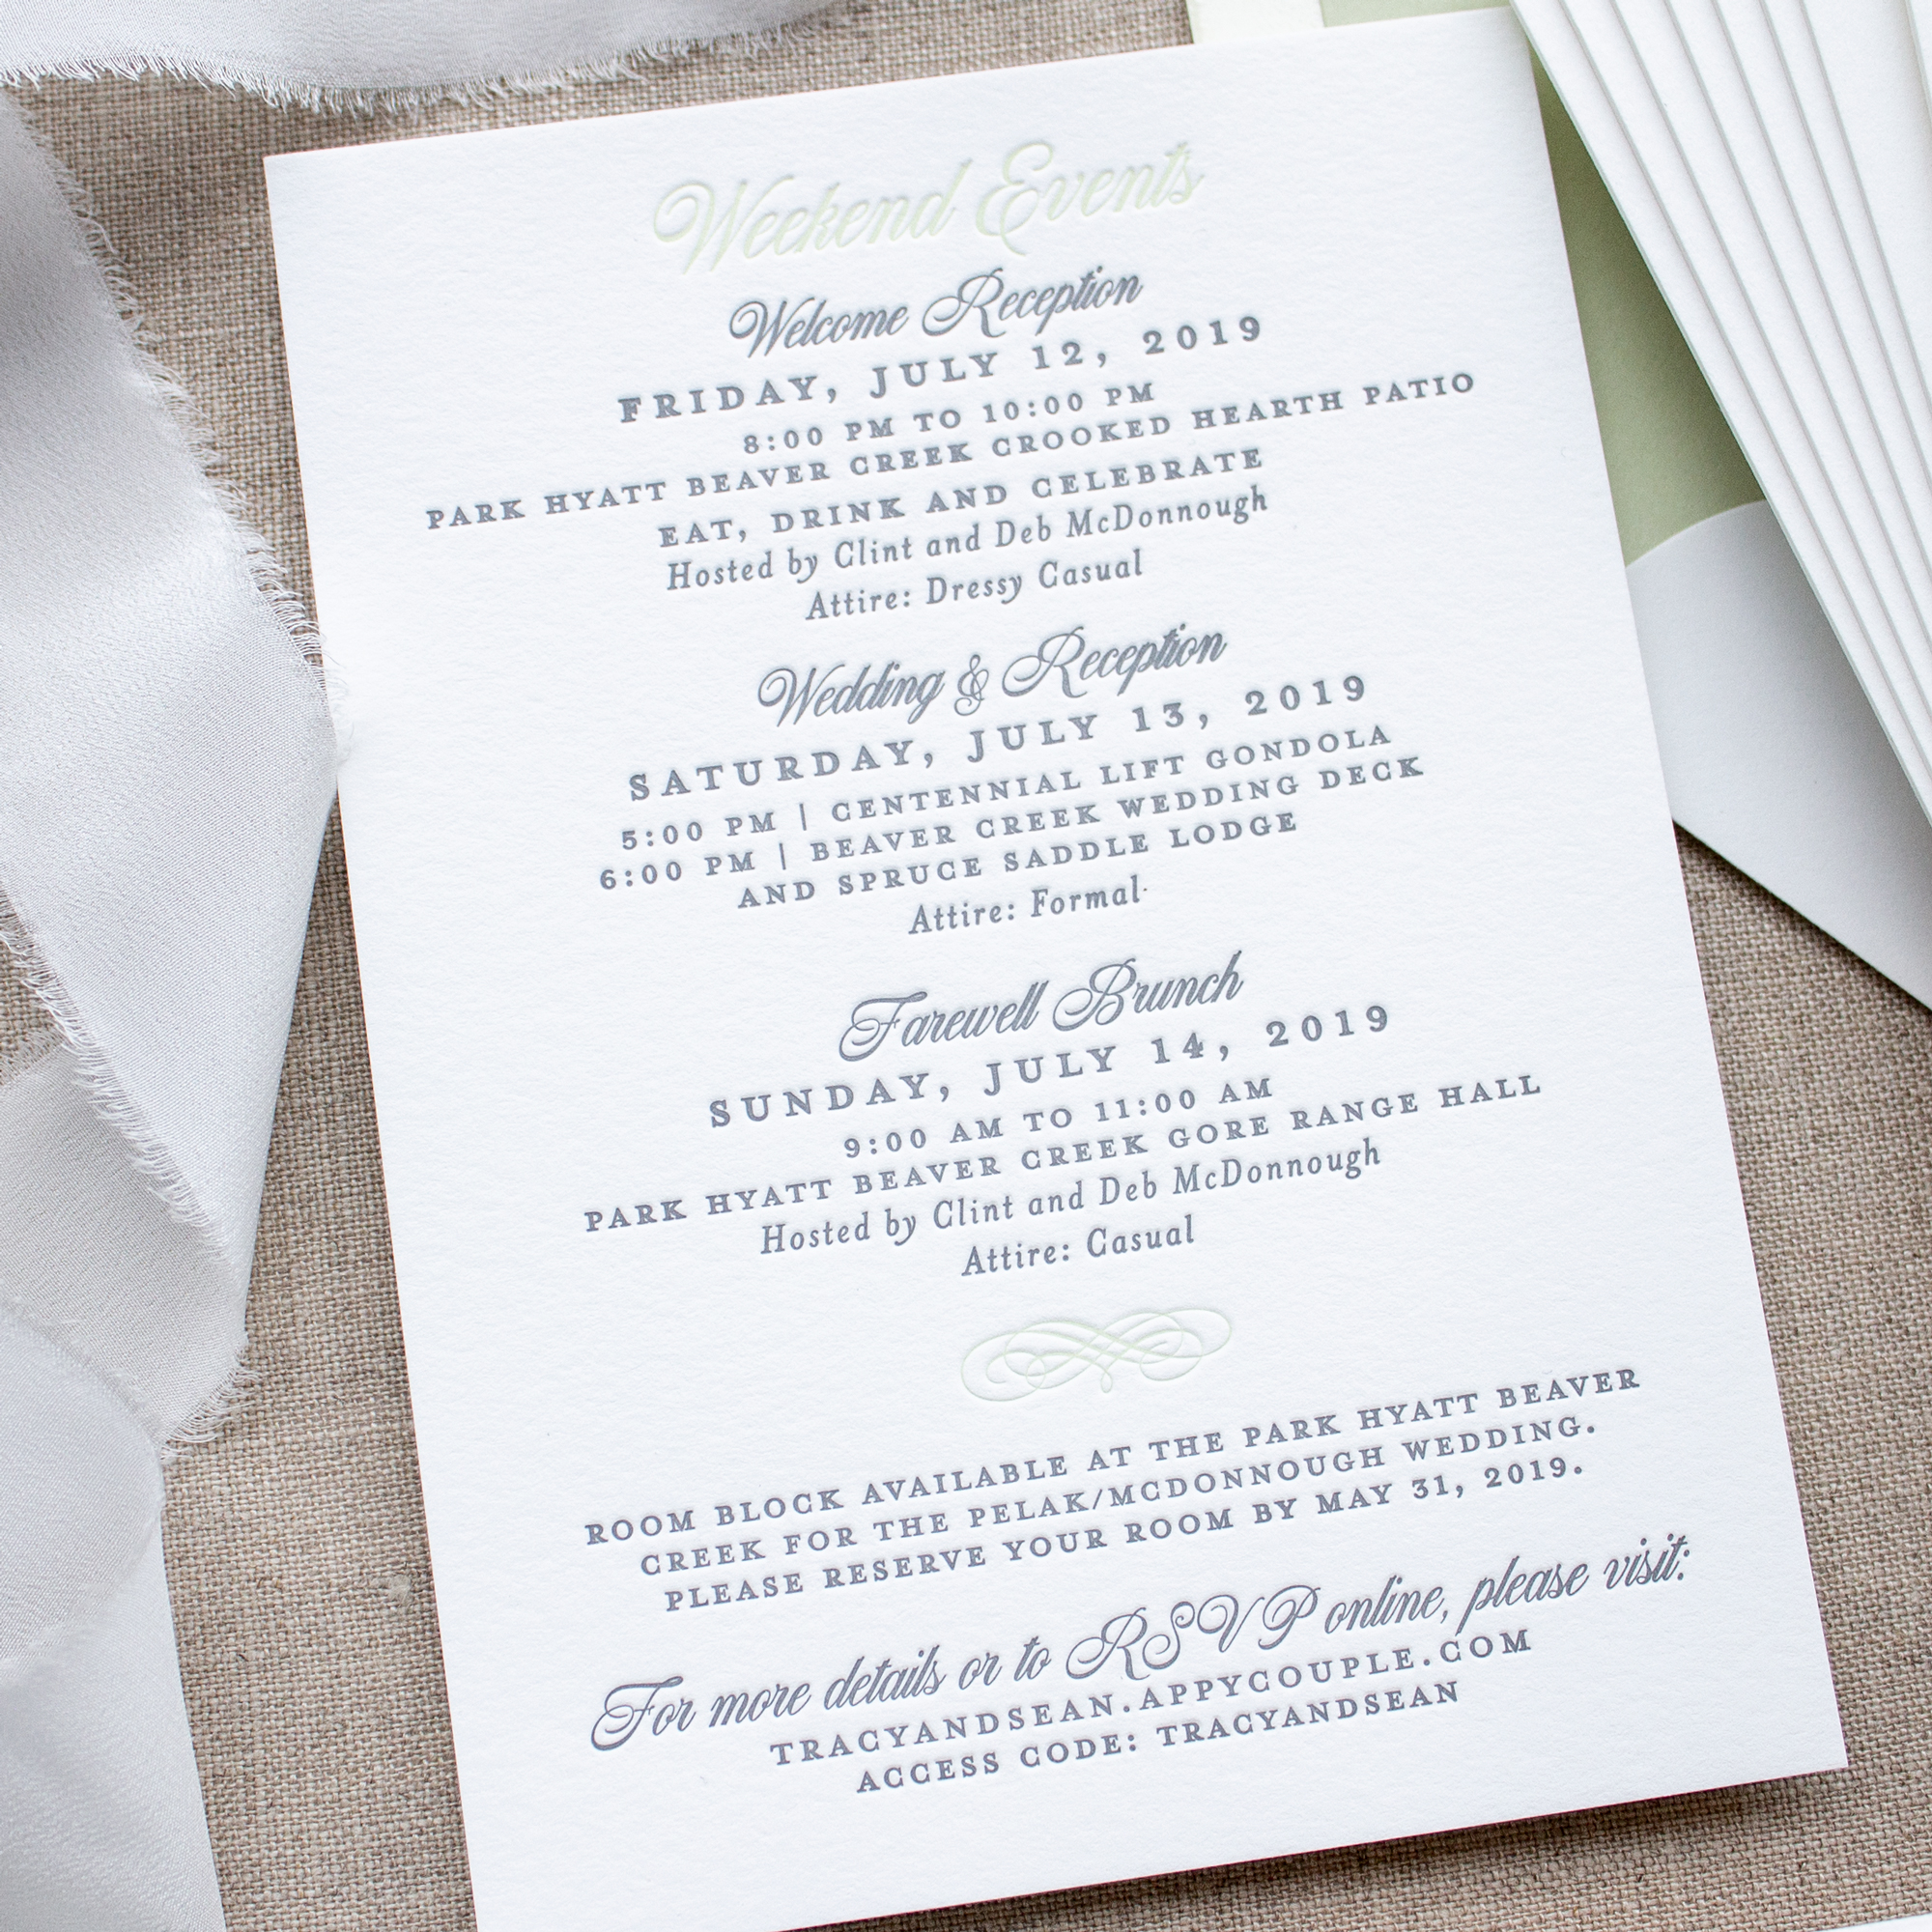 Weekend events insert card with wedding itinerary